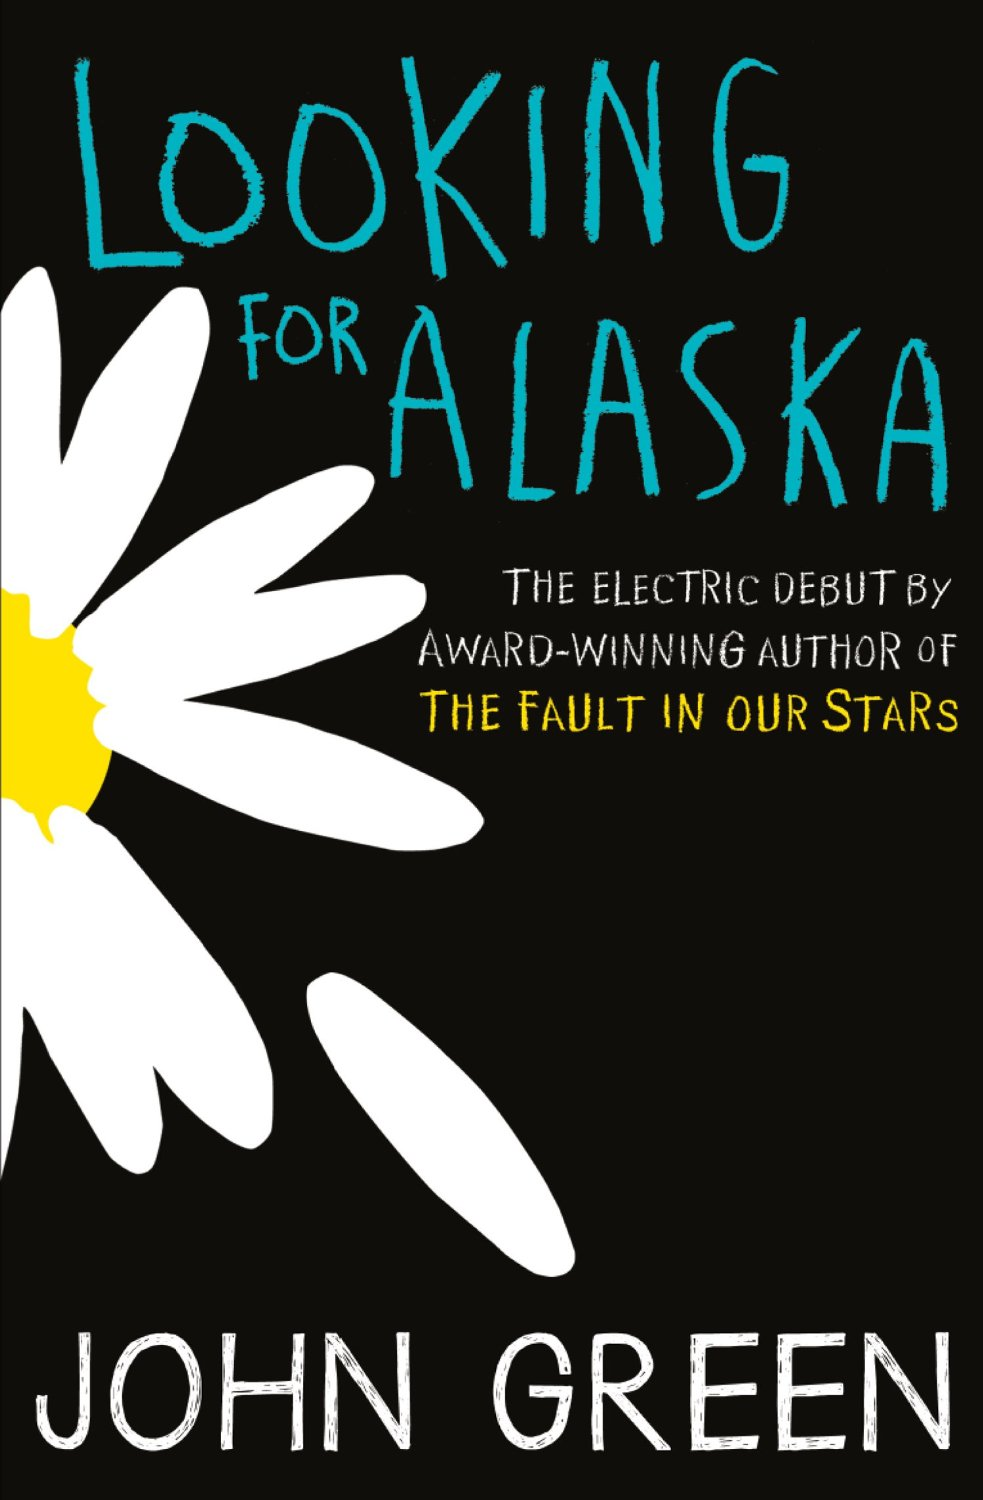 Paper Towns Book Cover Ideas : Looking for alaska by john green spring reading list